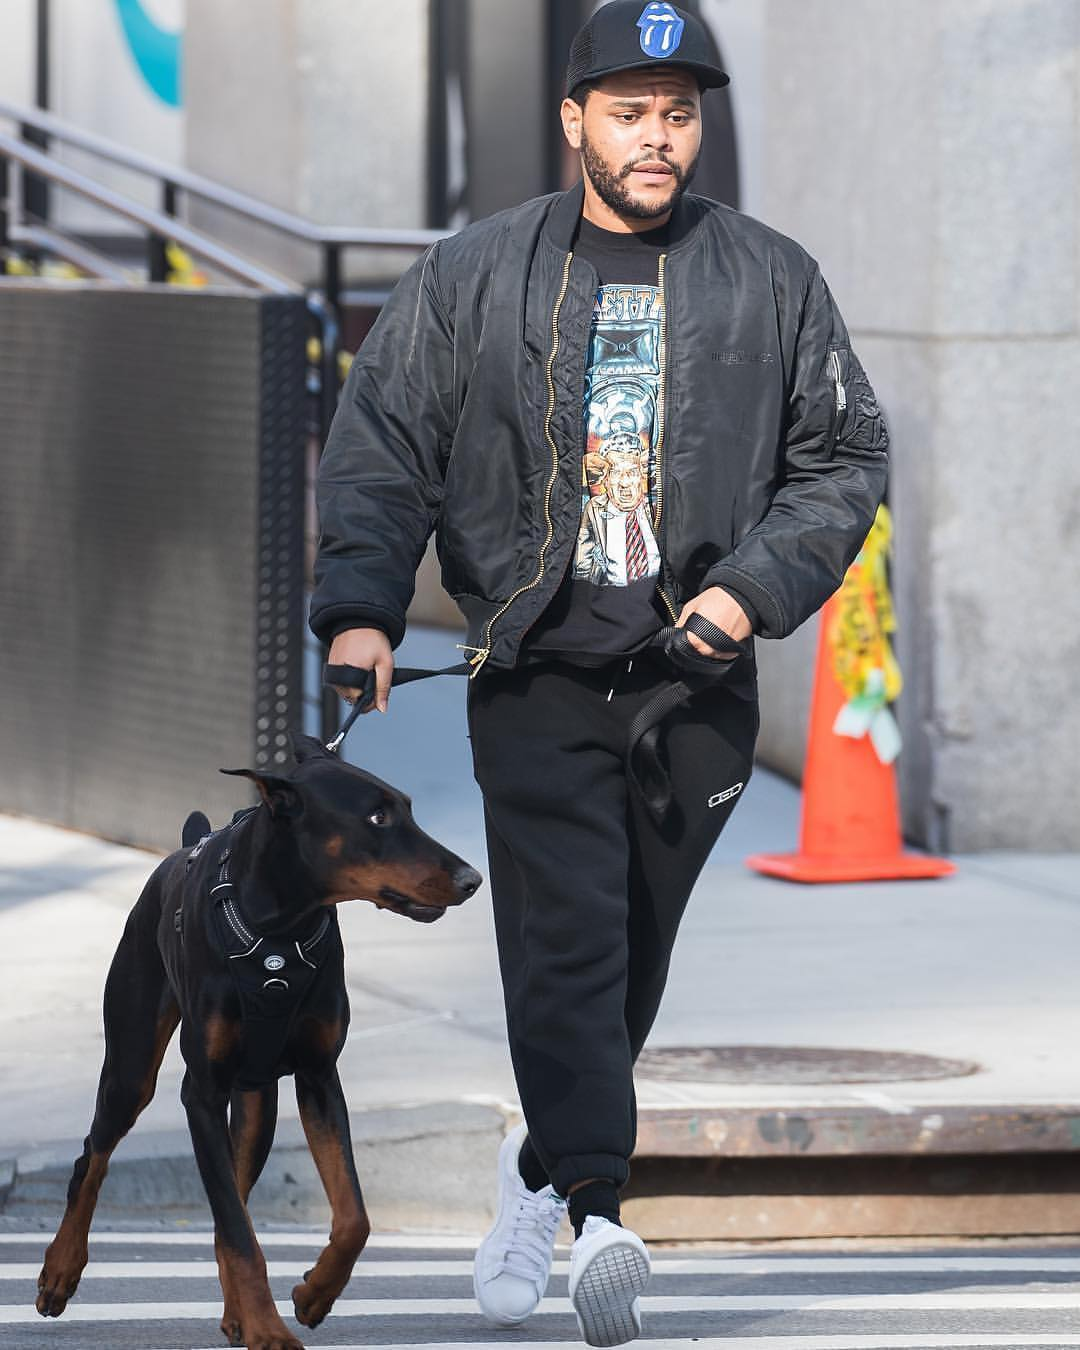 SPOTTED: The Weeknd Wears Puma in New York City